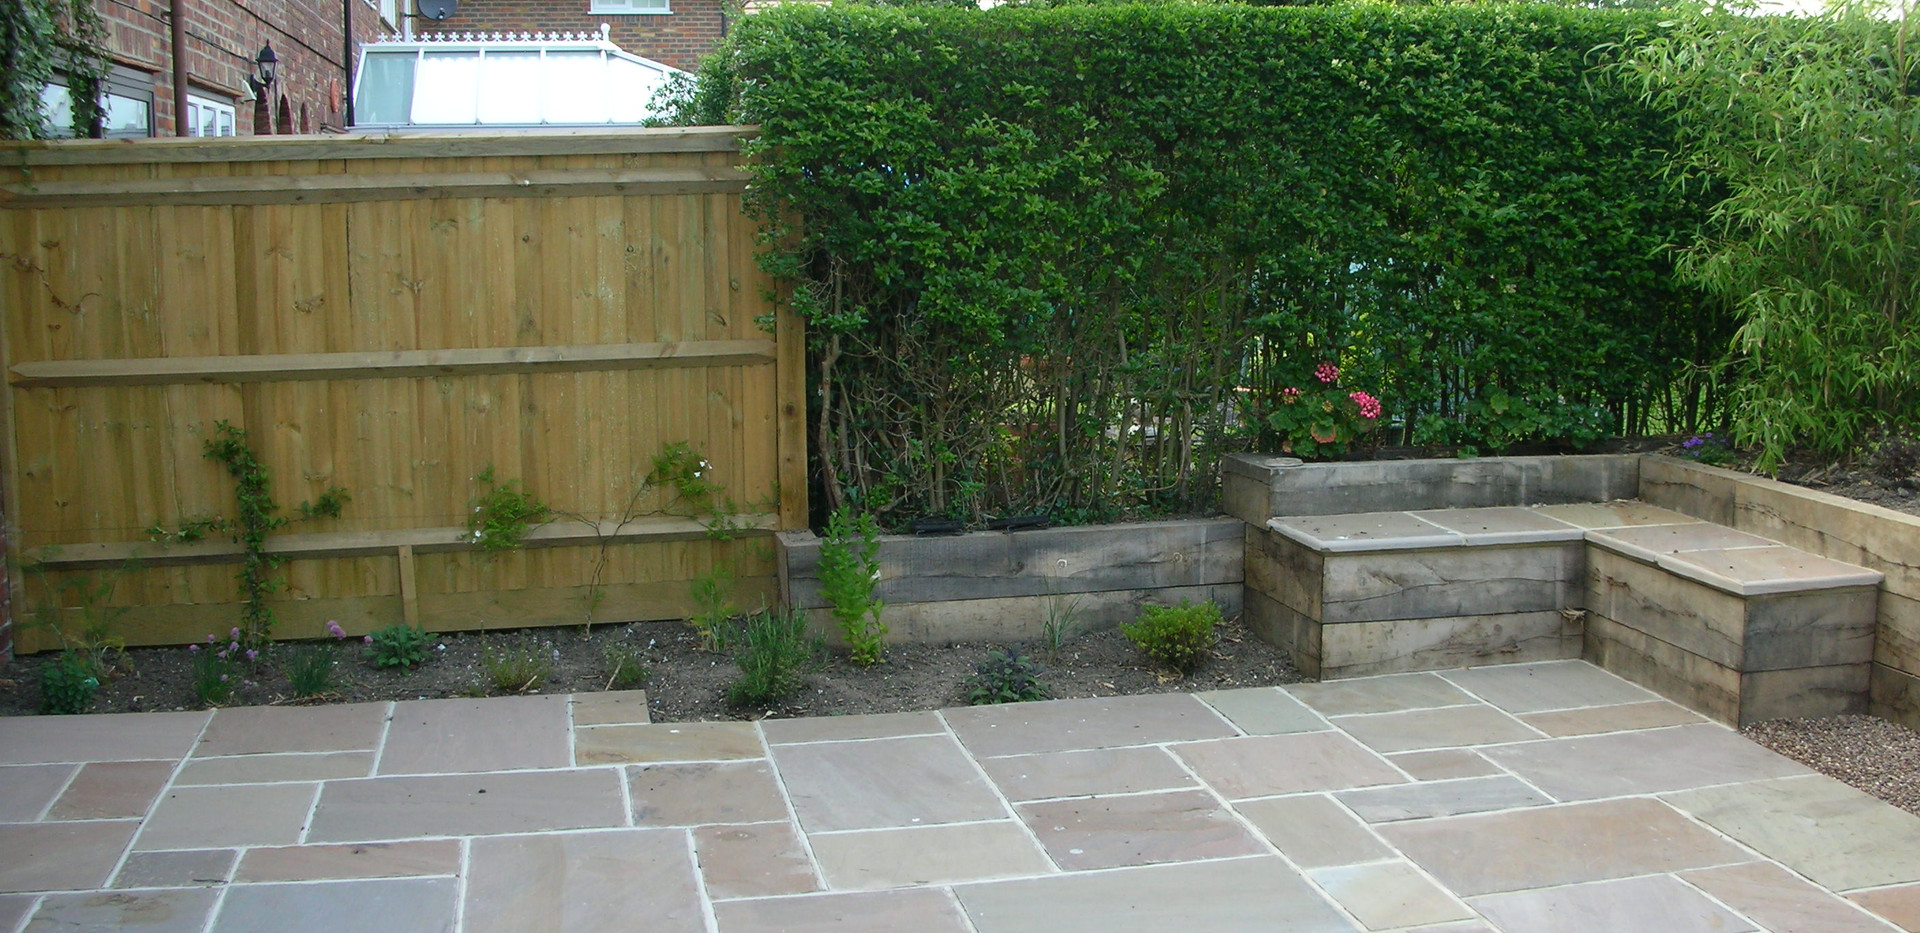 Raj Indian Sandstone Paving, Oak Sleepers